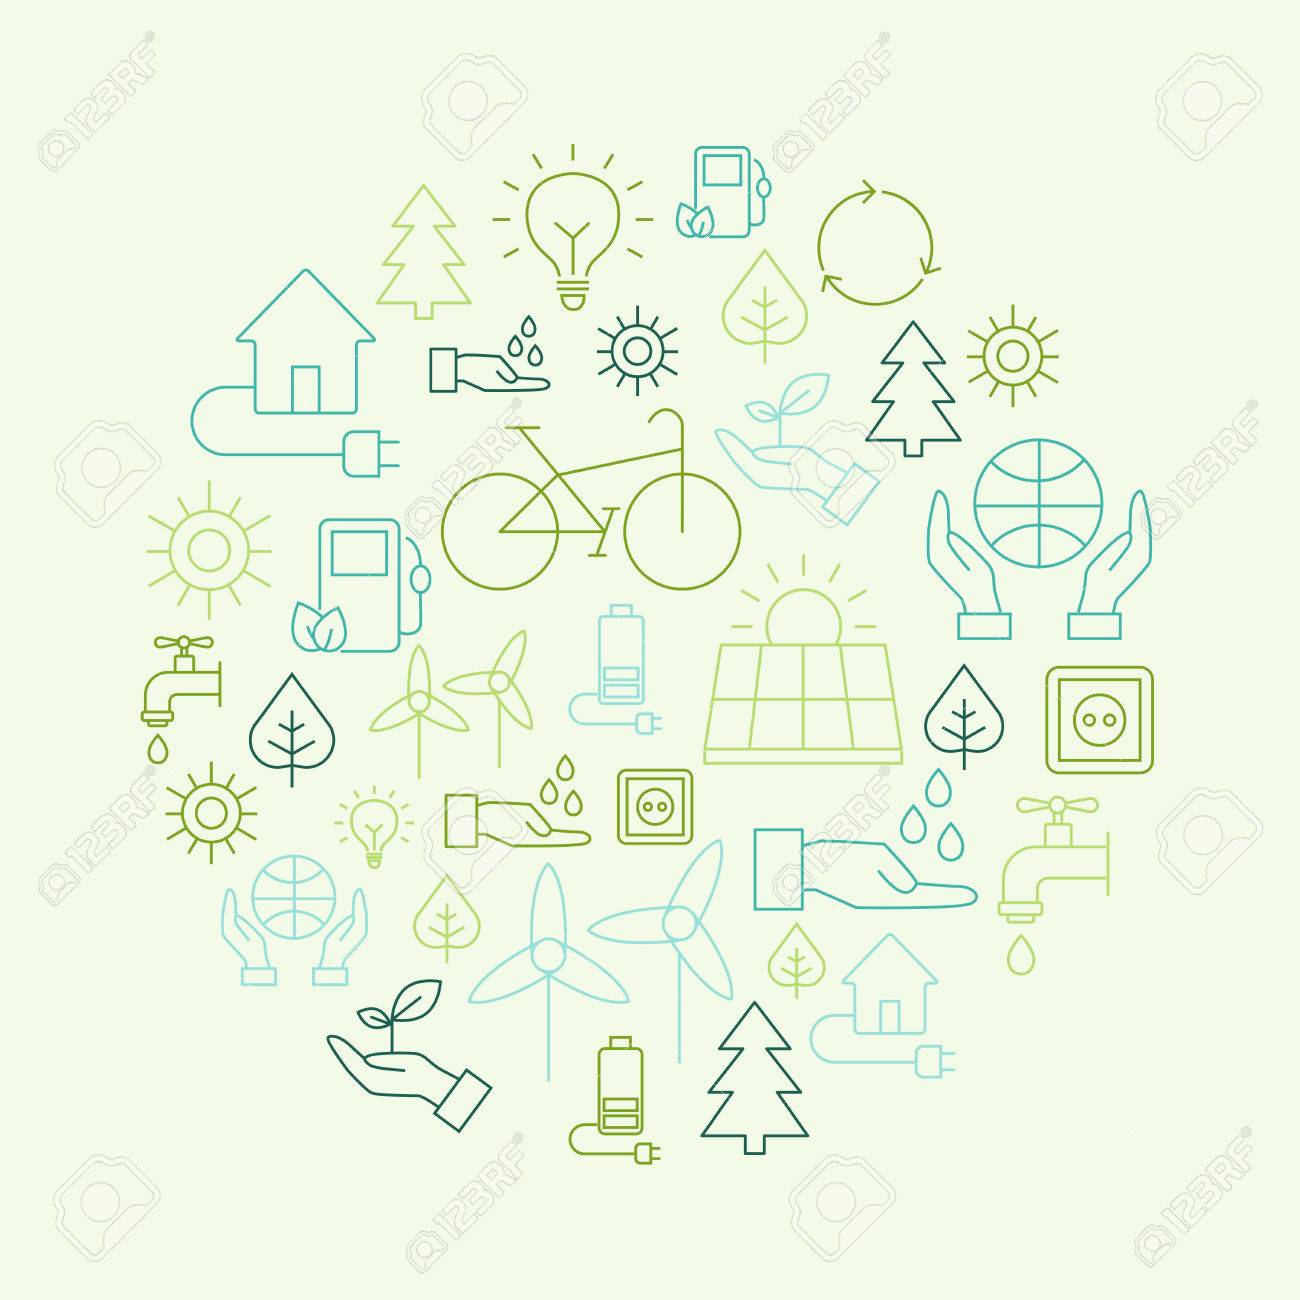 Ecology background made of icons representing the environment, renewable energies, nature conservation. Infographic modern thin lines vector design. - 52557888